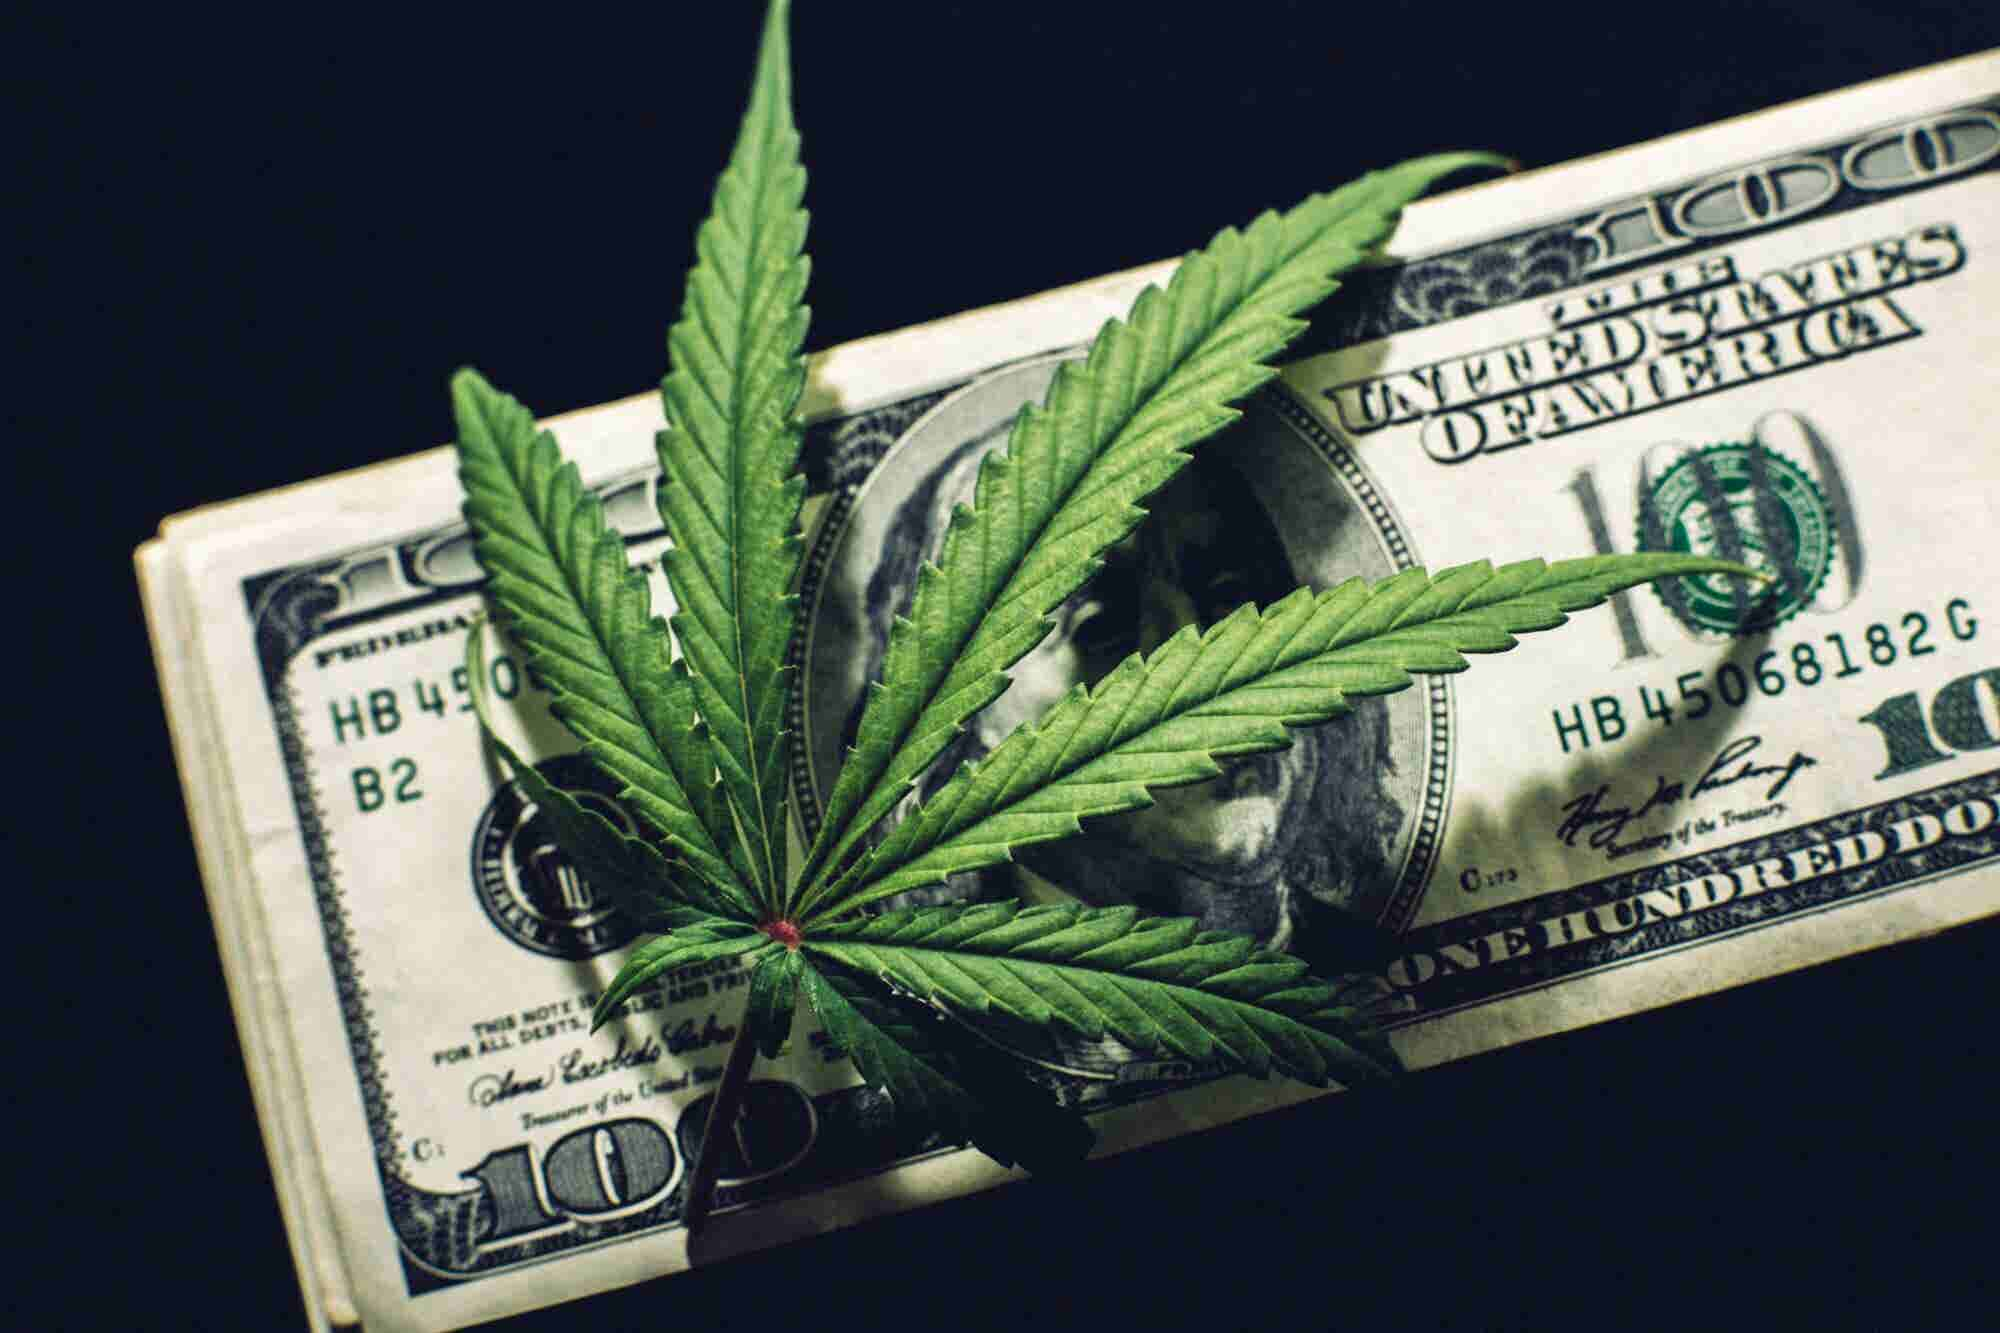 The Cannabis M&A Boom Is Looking Like the Dot.com Boom. Here's How to...